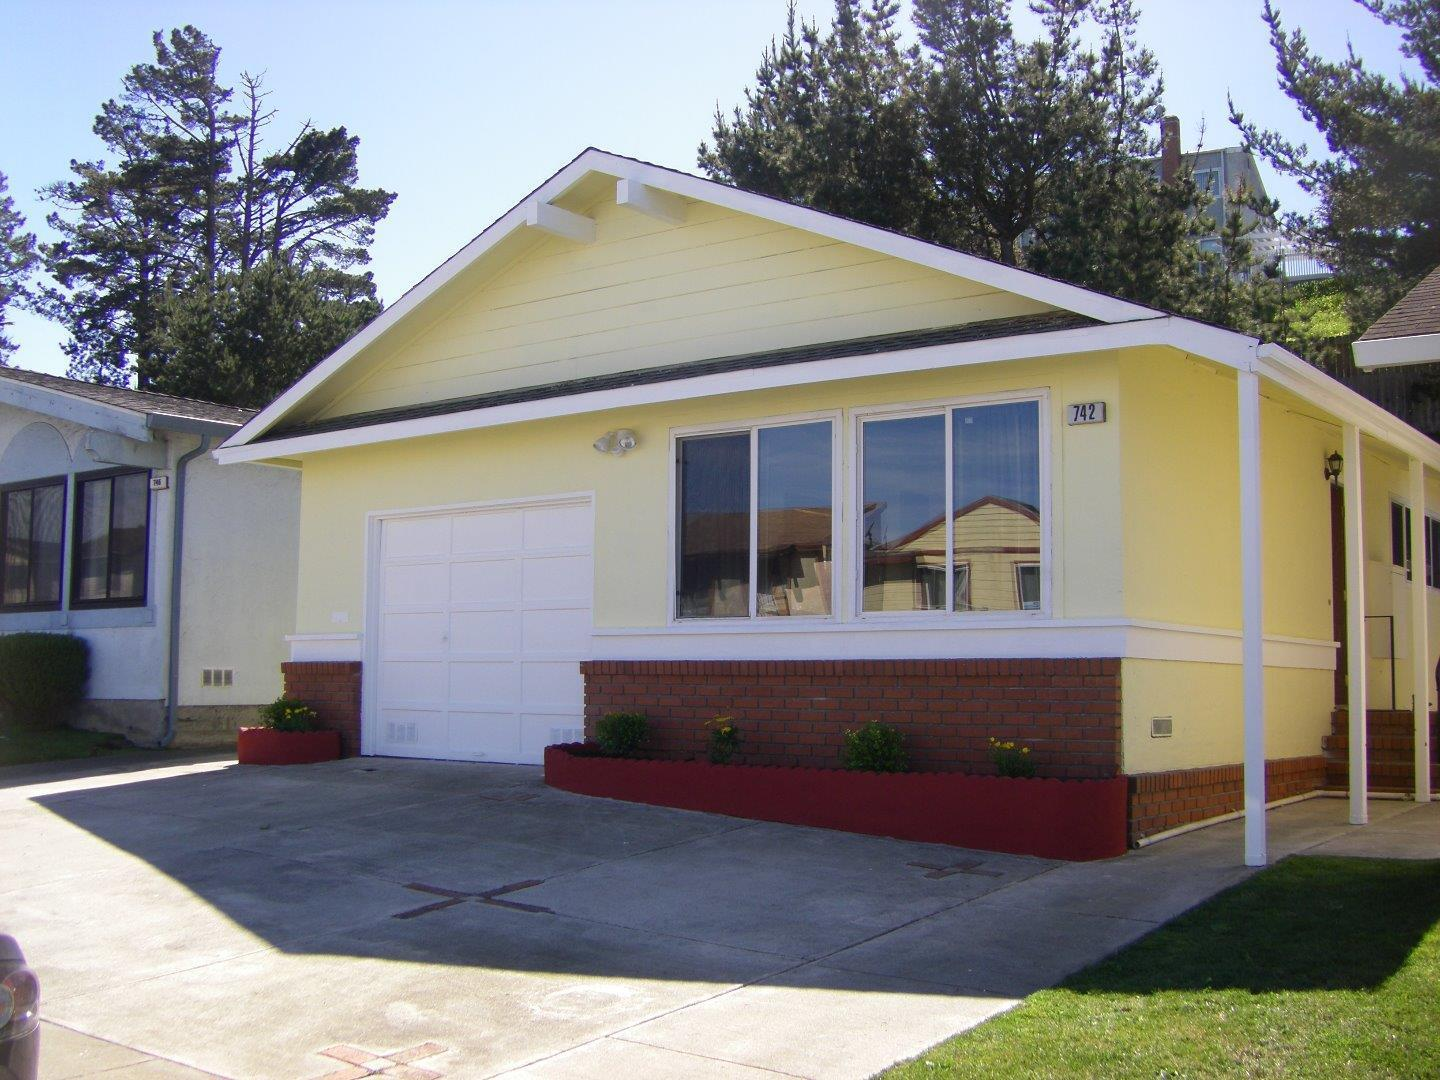 742 Gellert Blvd, Daly City, CA 94015